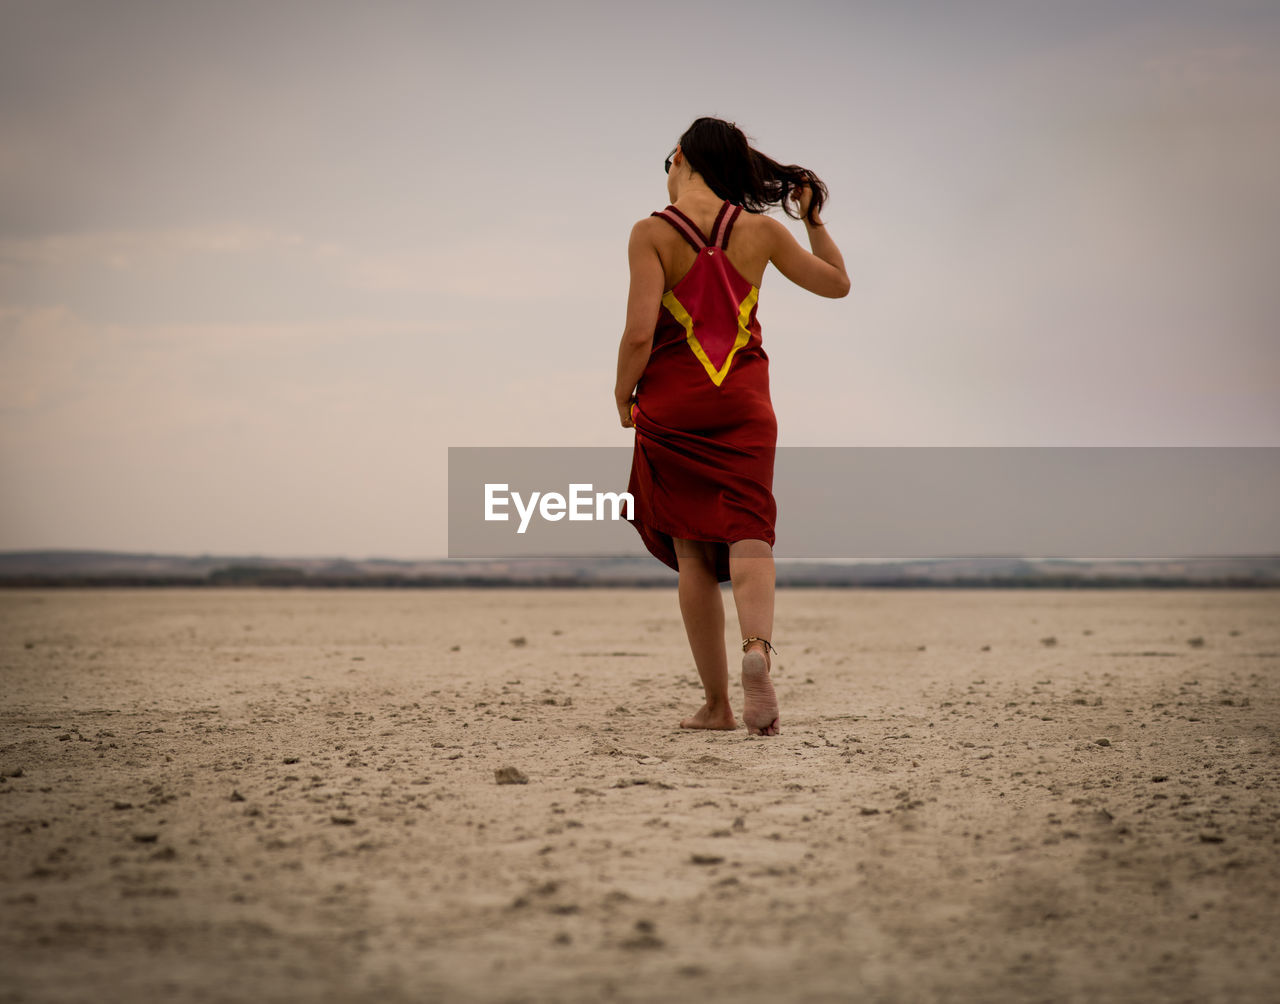 land, sky, one person, real people, lifestyles, full length, leisure activity, beach, sand, women, adult, standing, nature, scenics - nature, beauty in nature, young adult, tranquility, environment, desert, outdoors, beautiful woman, climate, arid climate